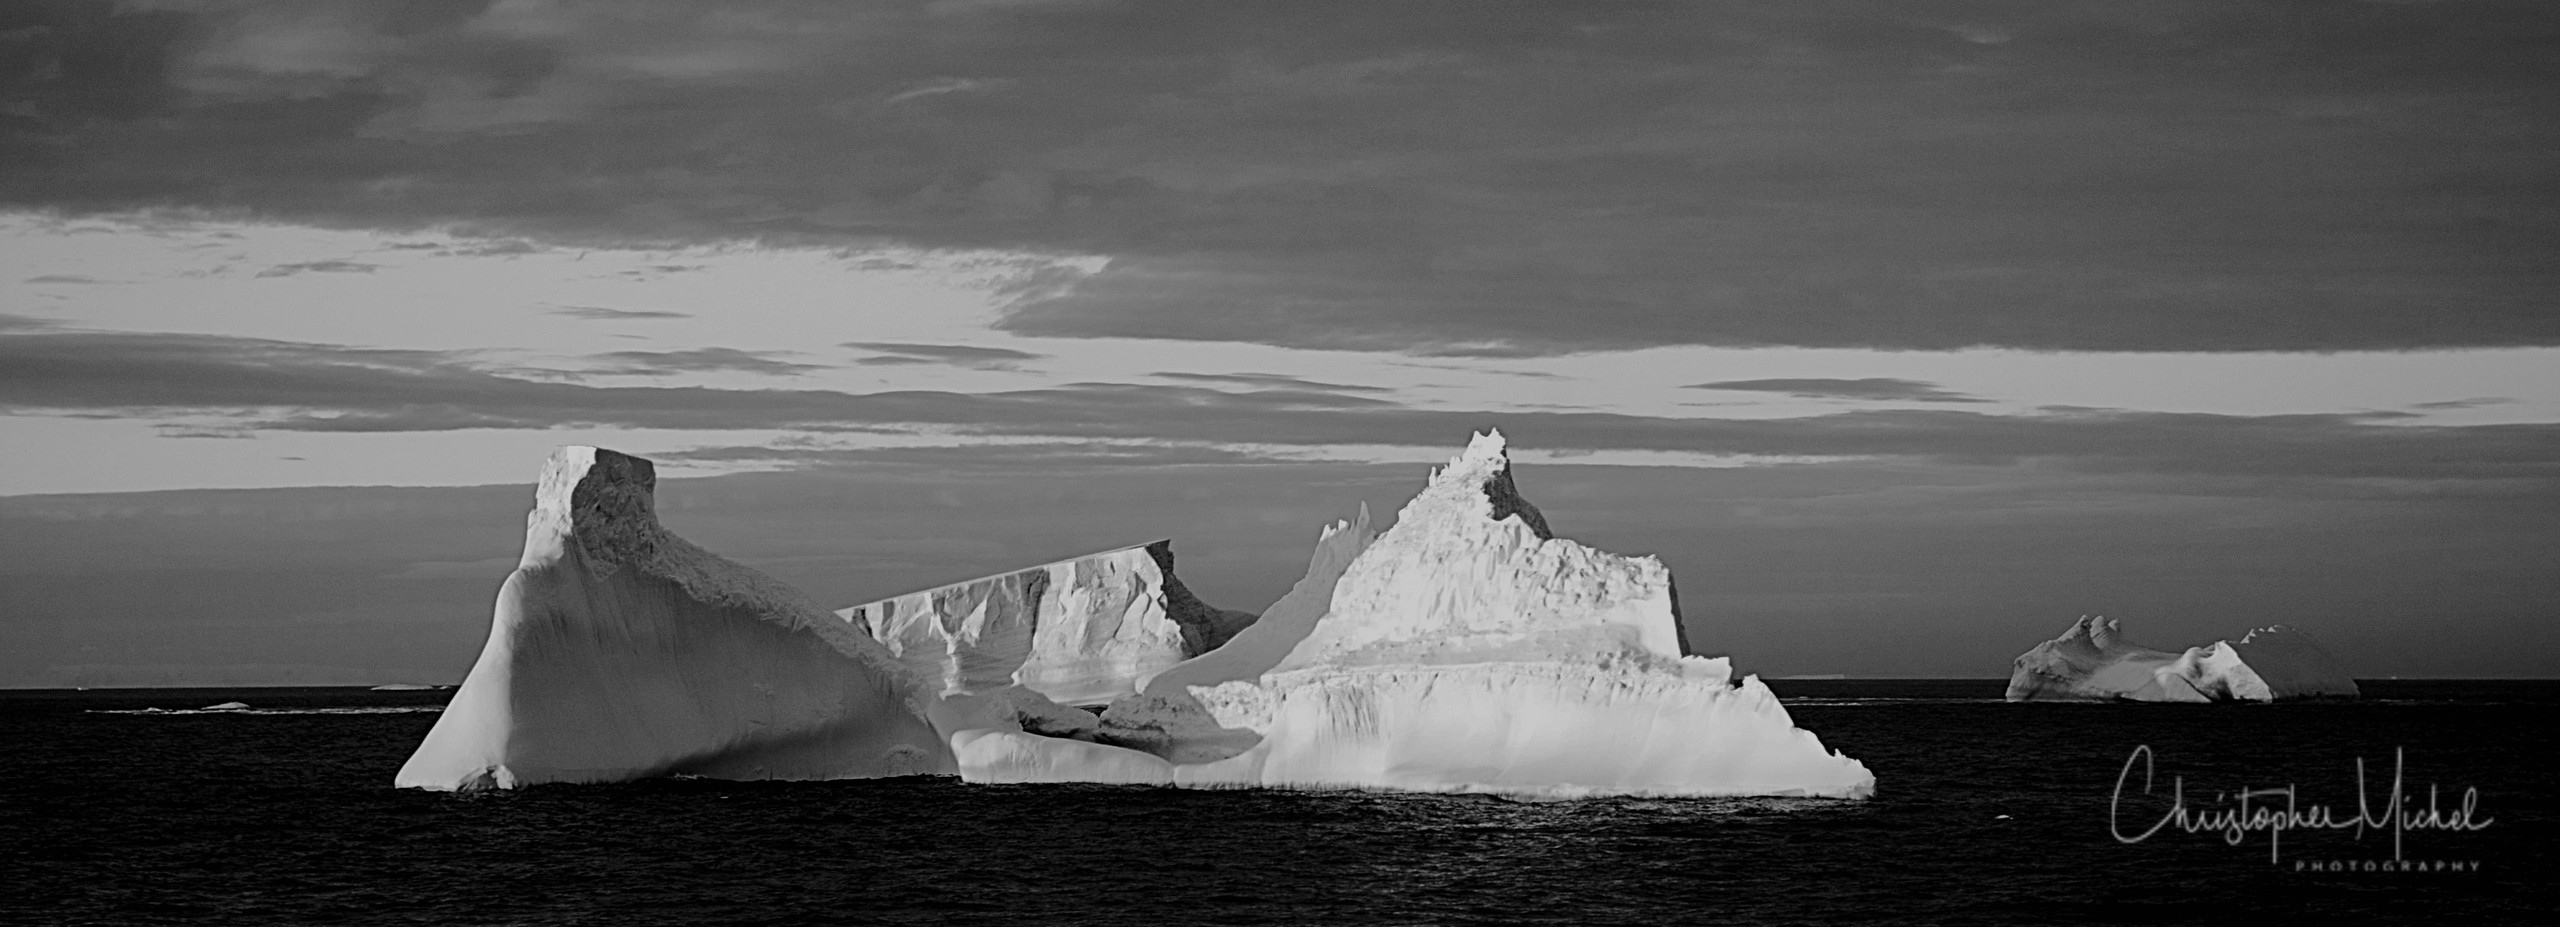 The ice was here, the ice was there, The first view of Antarctica is always an iceberg. It may be a monolith hovering on the horizon, a barely discernible spectre looming out of the mist, or perhaps a sun-spangled, dazzling icon marking the gateway to this new world. It will undoubtably be icebergs that leave the most lasting impressions on the imagination of visitors.  —Mark Jones, Wild Ice